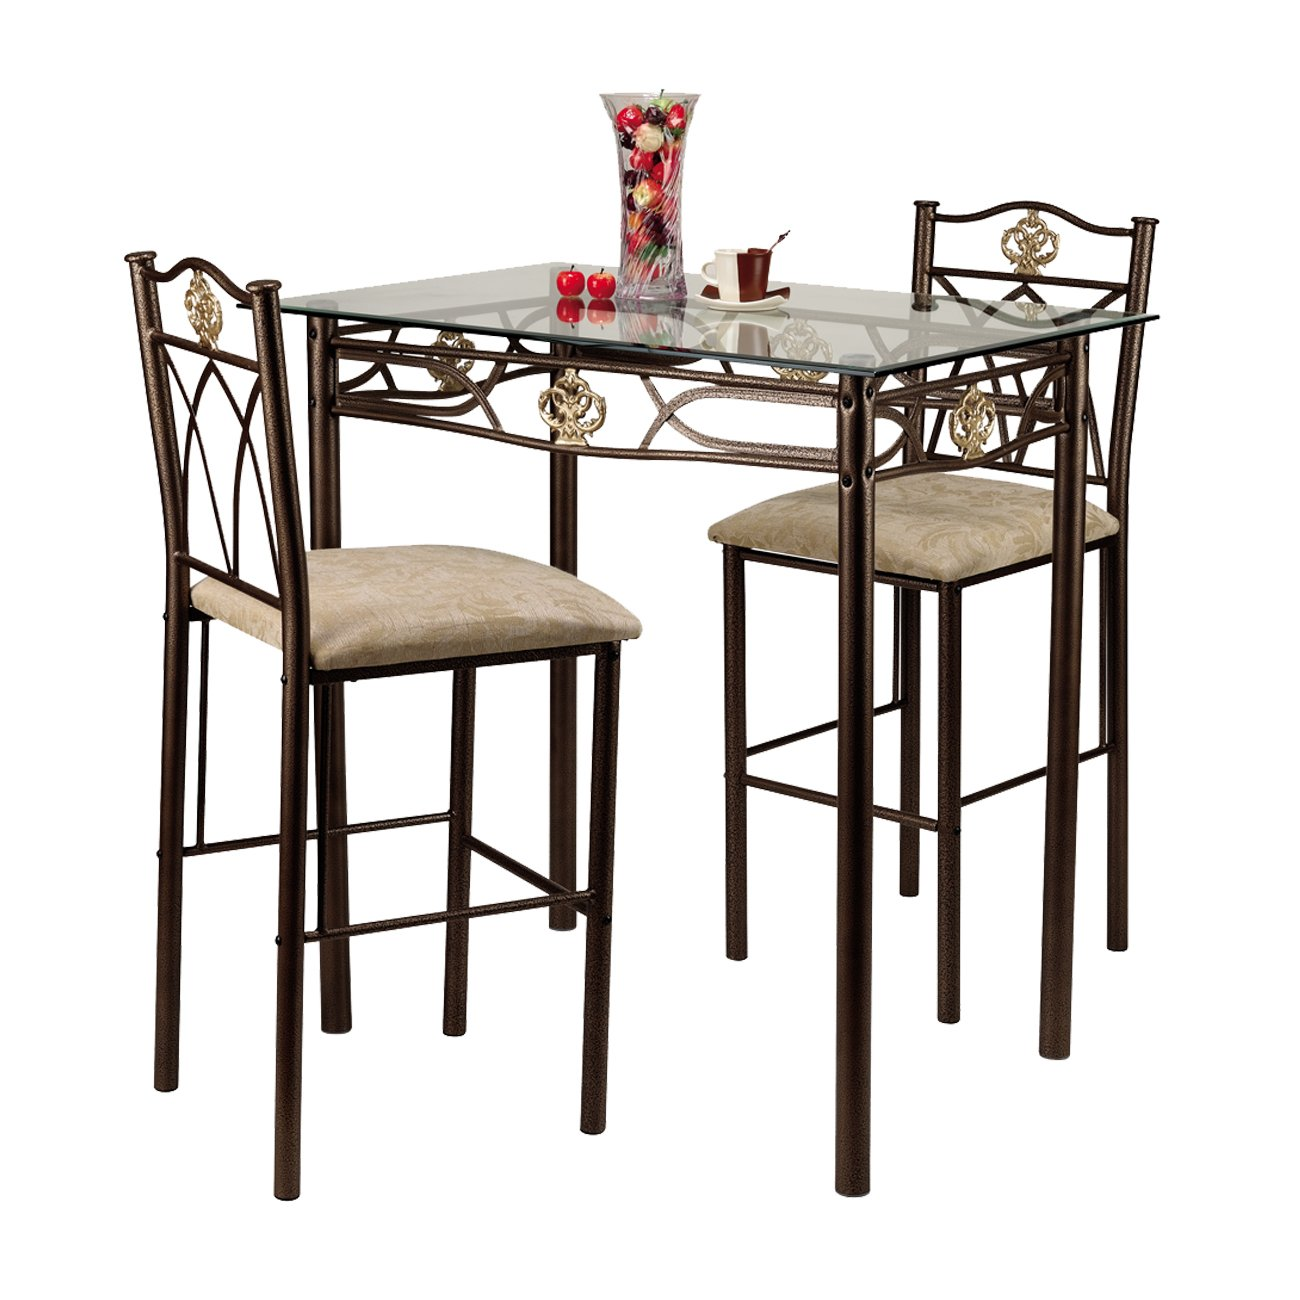 amazoncom home source industries crown bistro 3piece dining set with glass table top and 2 chairs kitchen u0026 dining